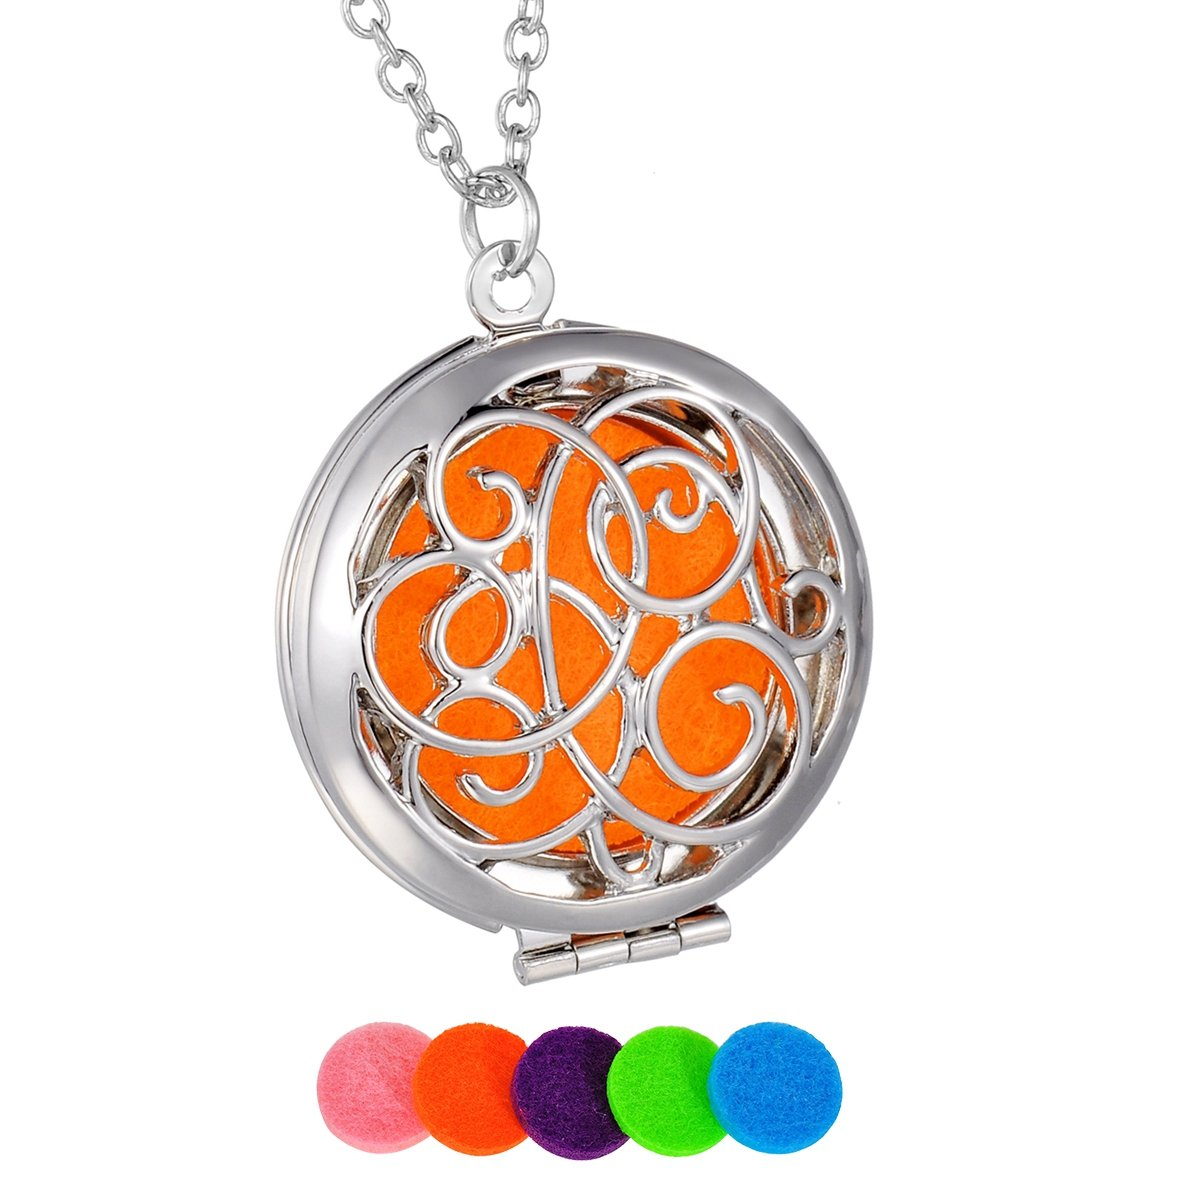 HooAMI Vine Aromatherapy Essential Oil Diffuser Necklace Pendant Magical Box Locket Jewelry TY UPIE13736